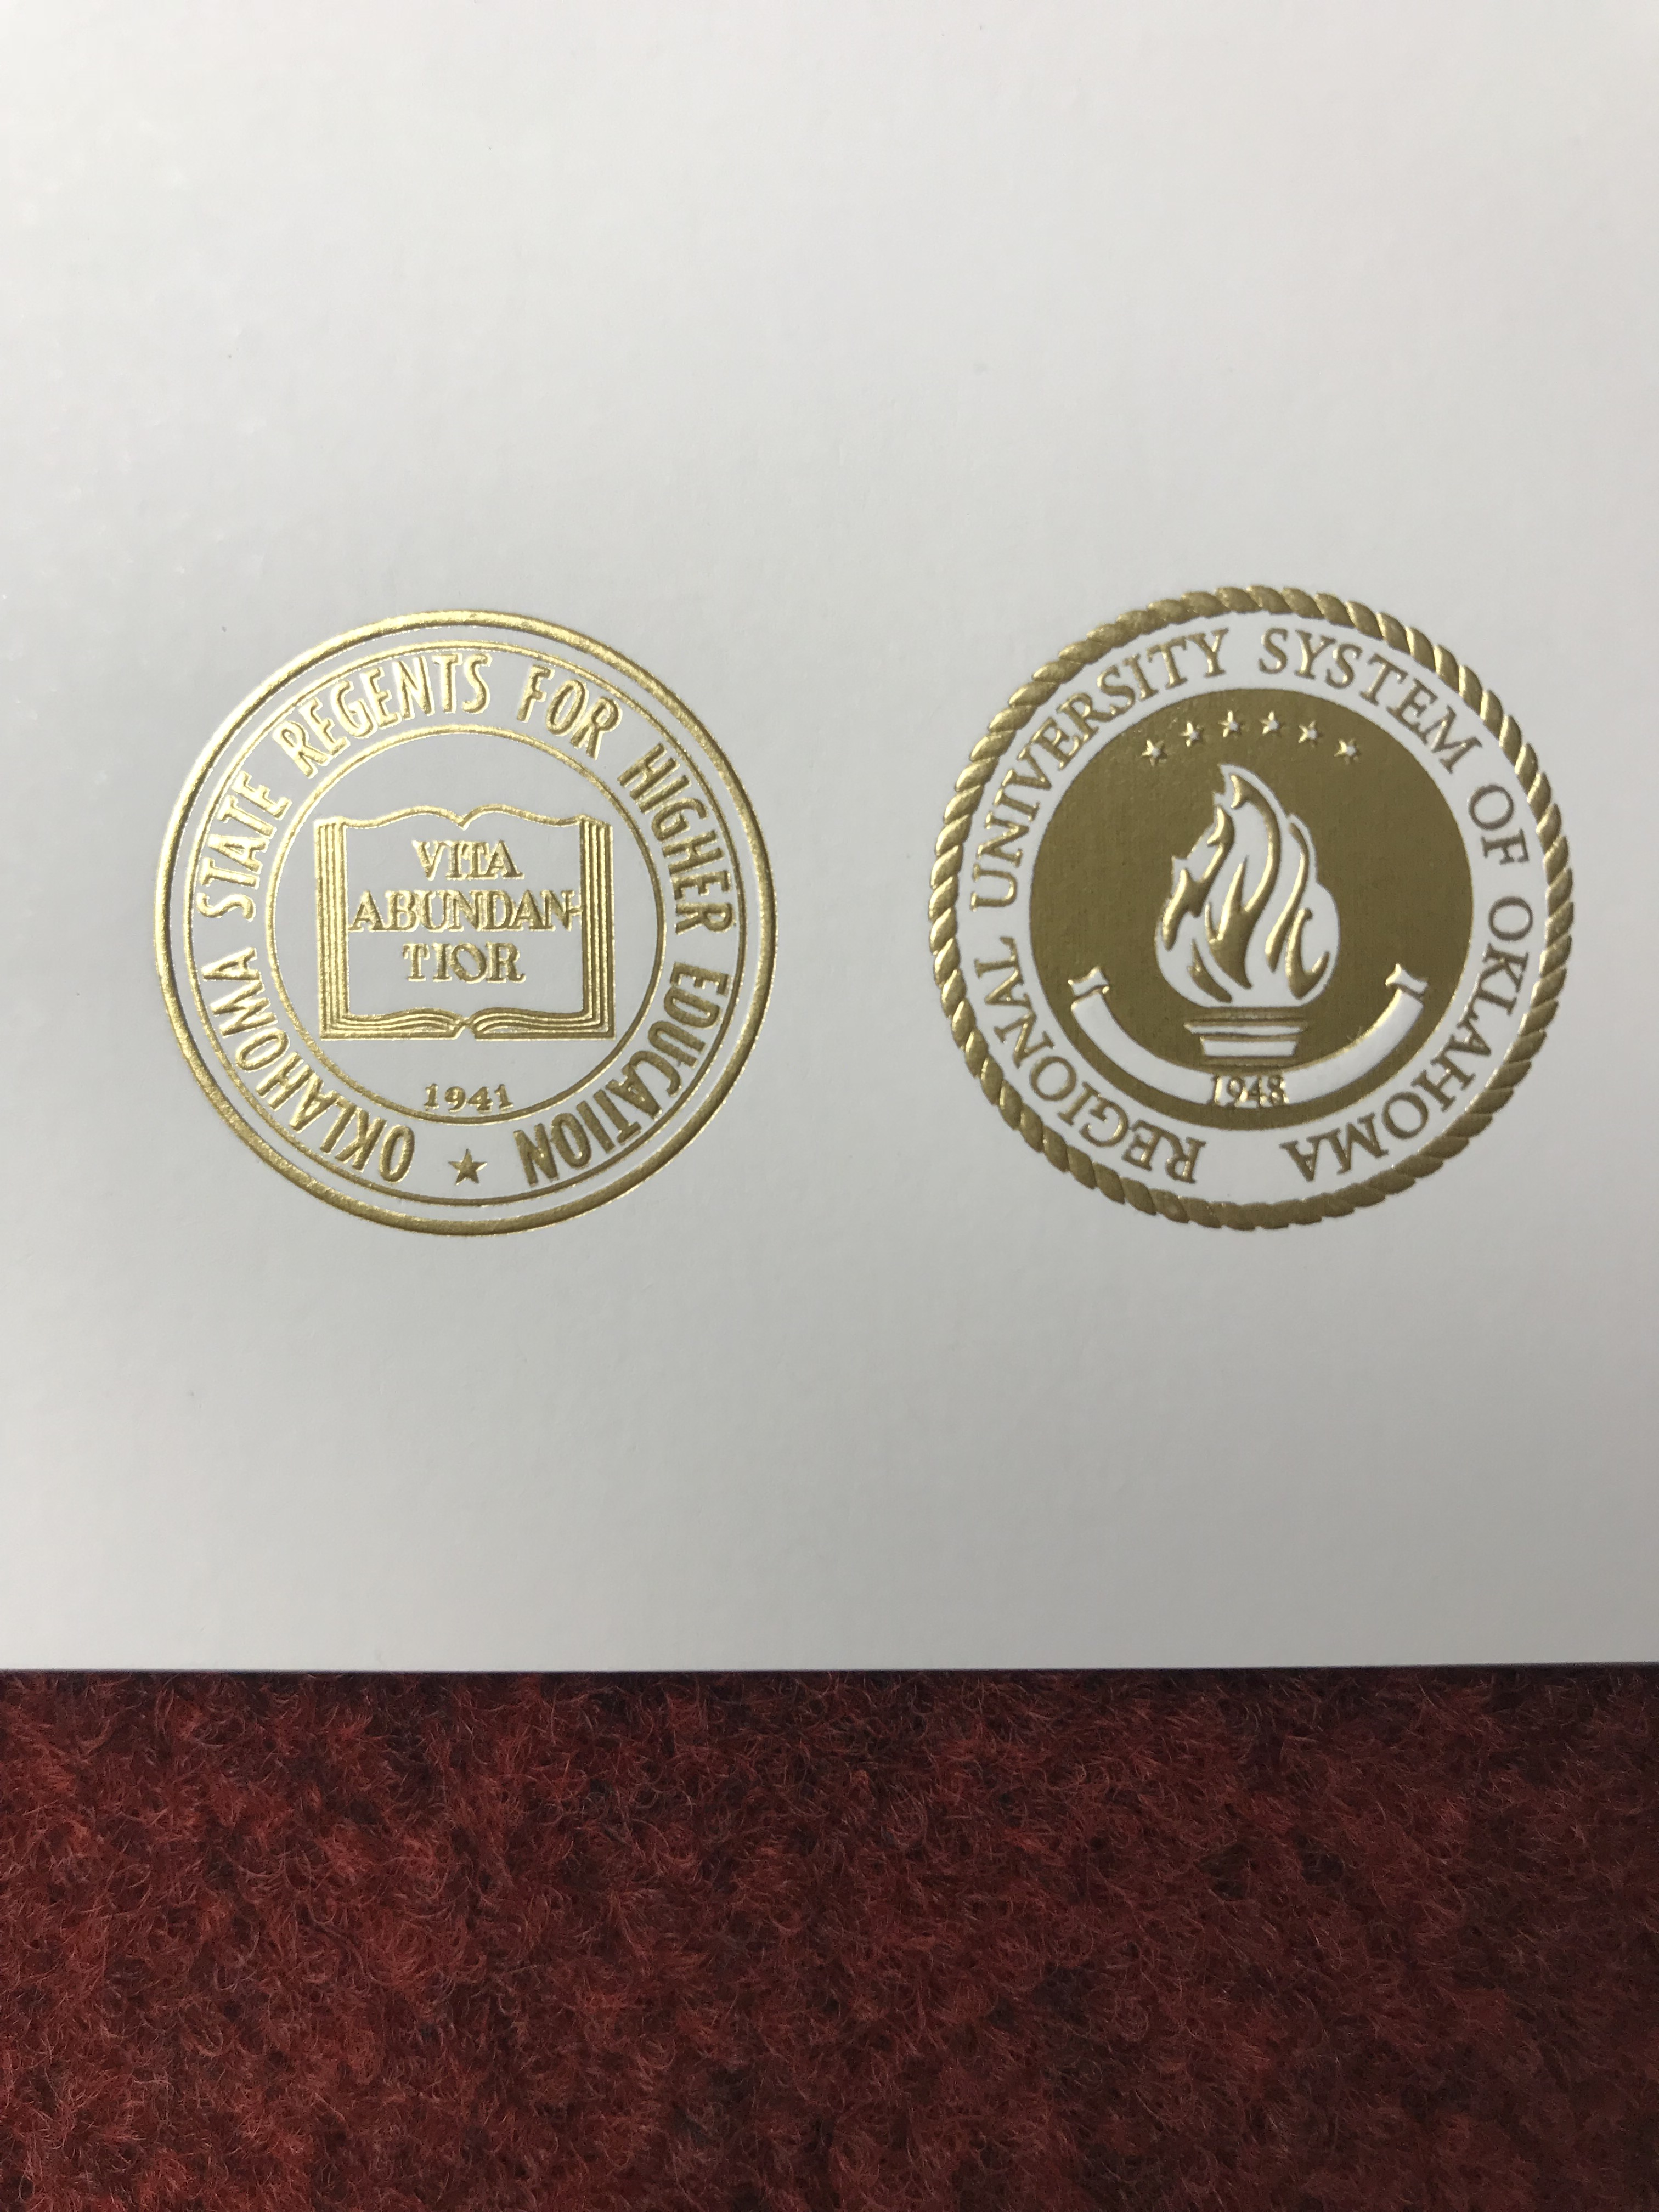 How does a real golden seal of University of Oklahoma(OU) dip